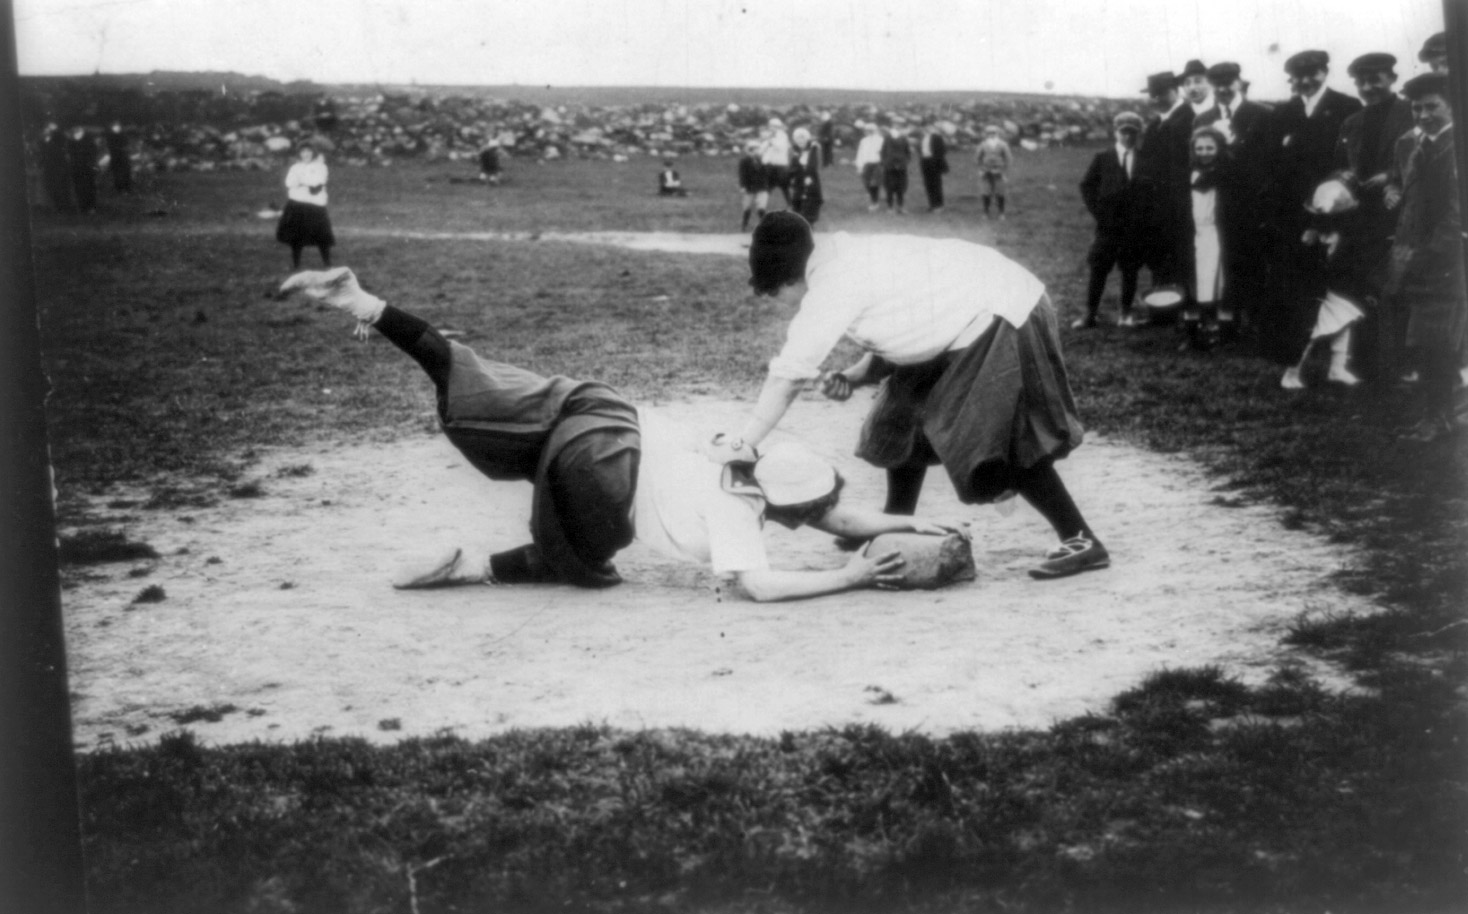 Miss Schnall sliding to first. Miss Morgan on bag. The New York Female Giants, circa 1913.